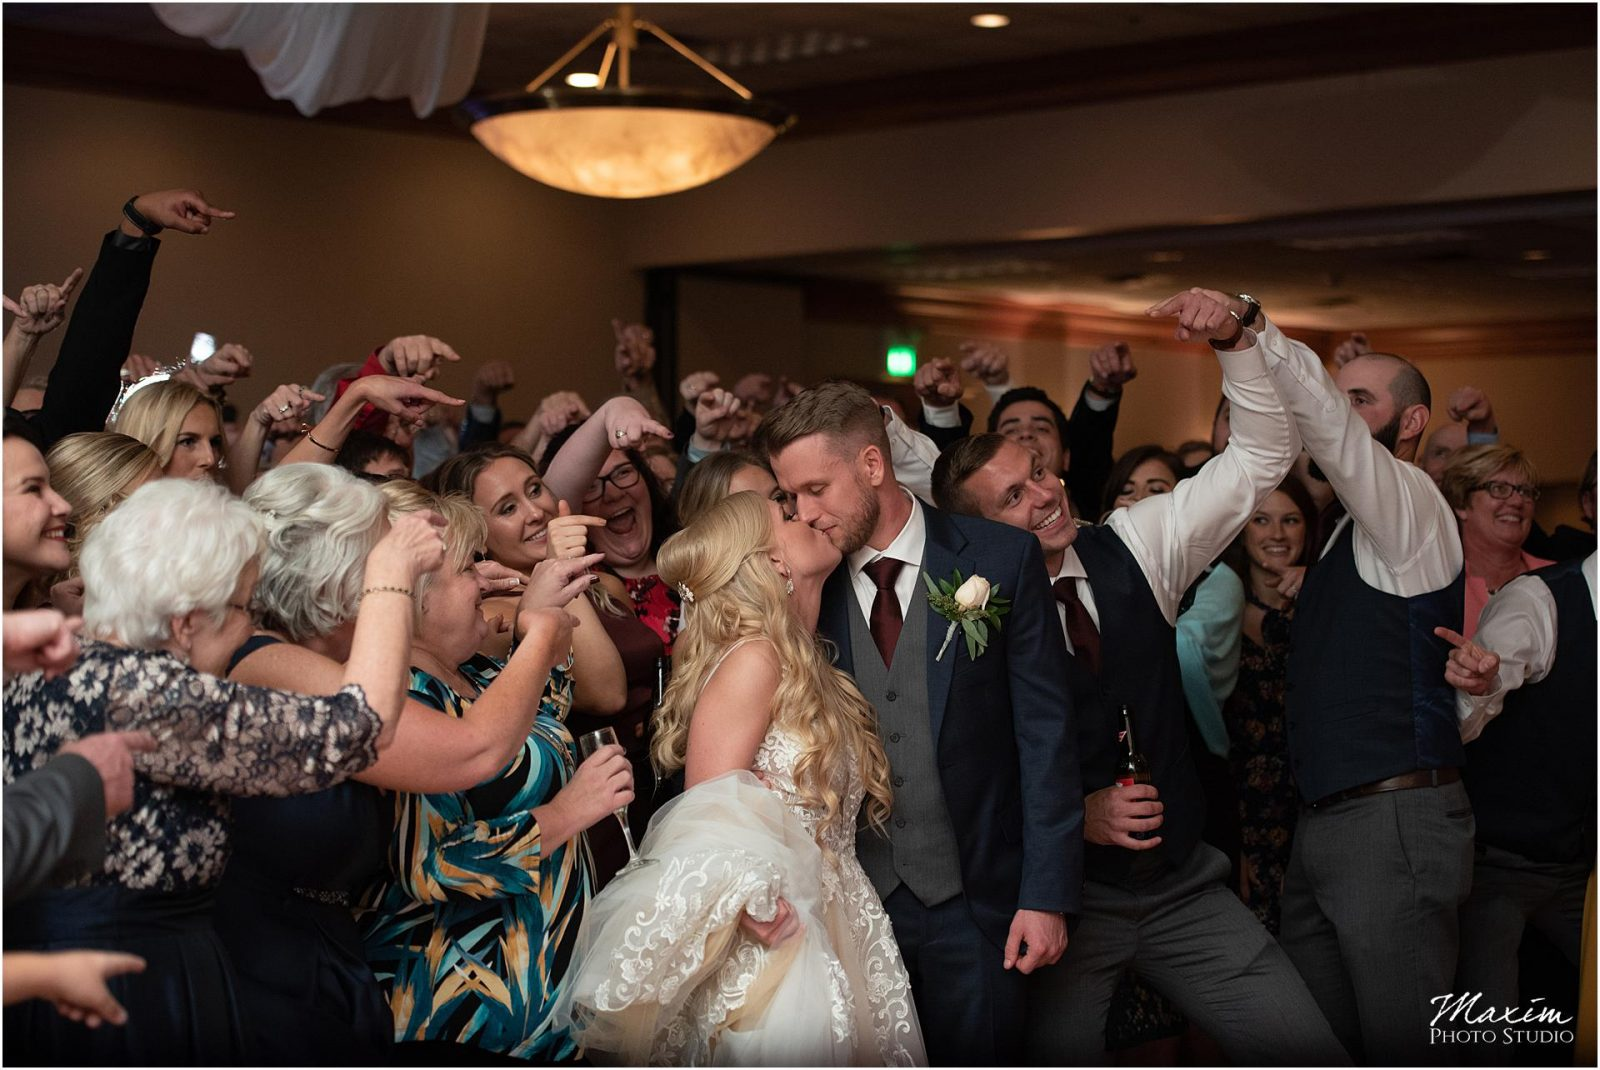 Holiday Inn Airport Wedding, Kentucky Wedding Photographer, Wedding Reception Group Photo